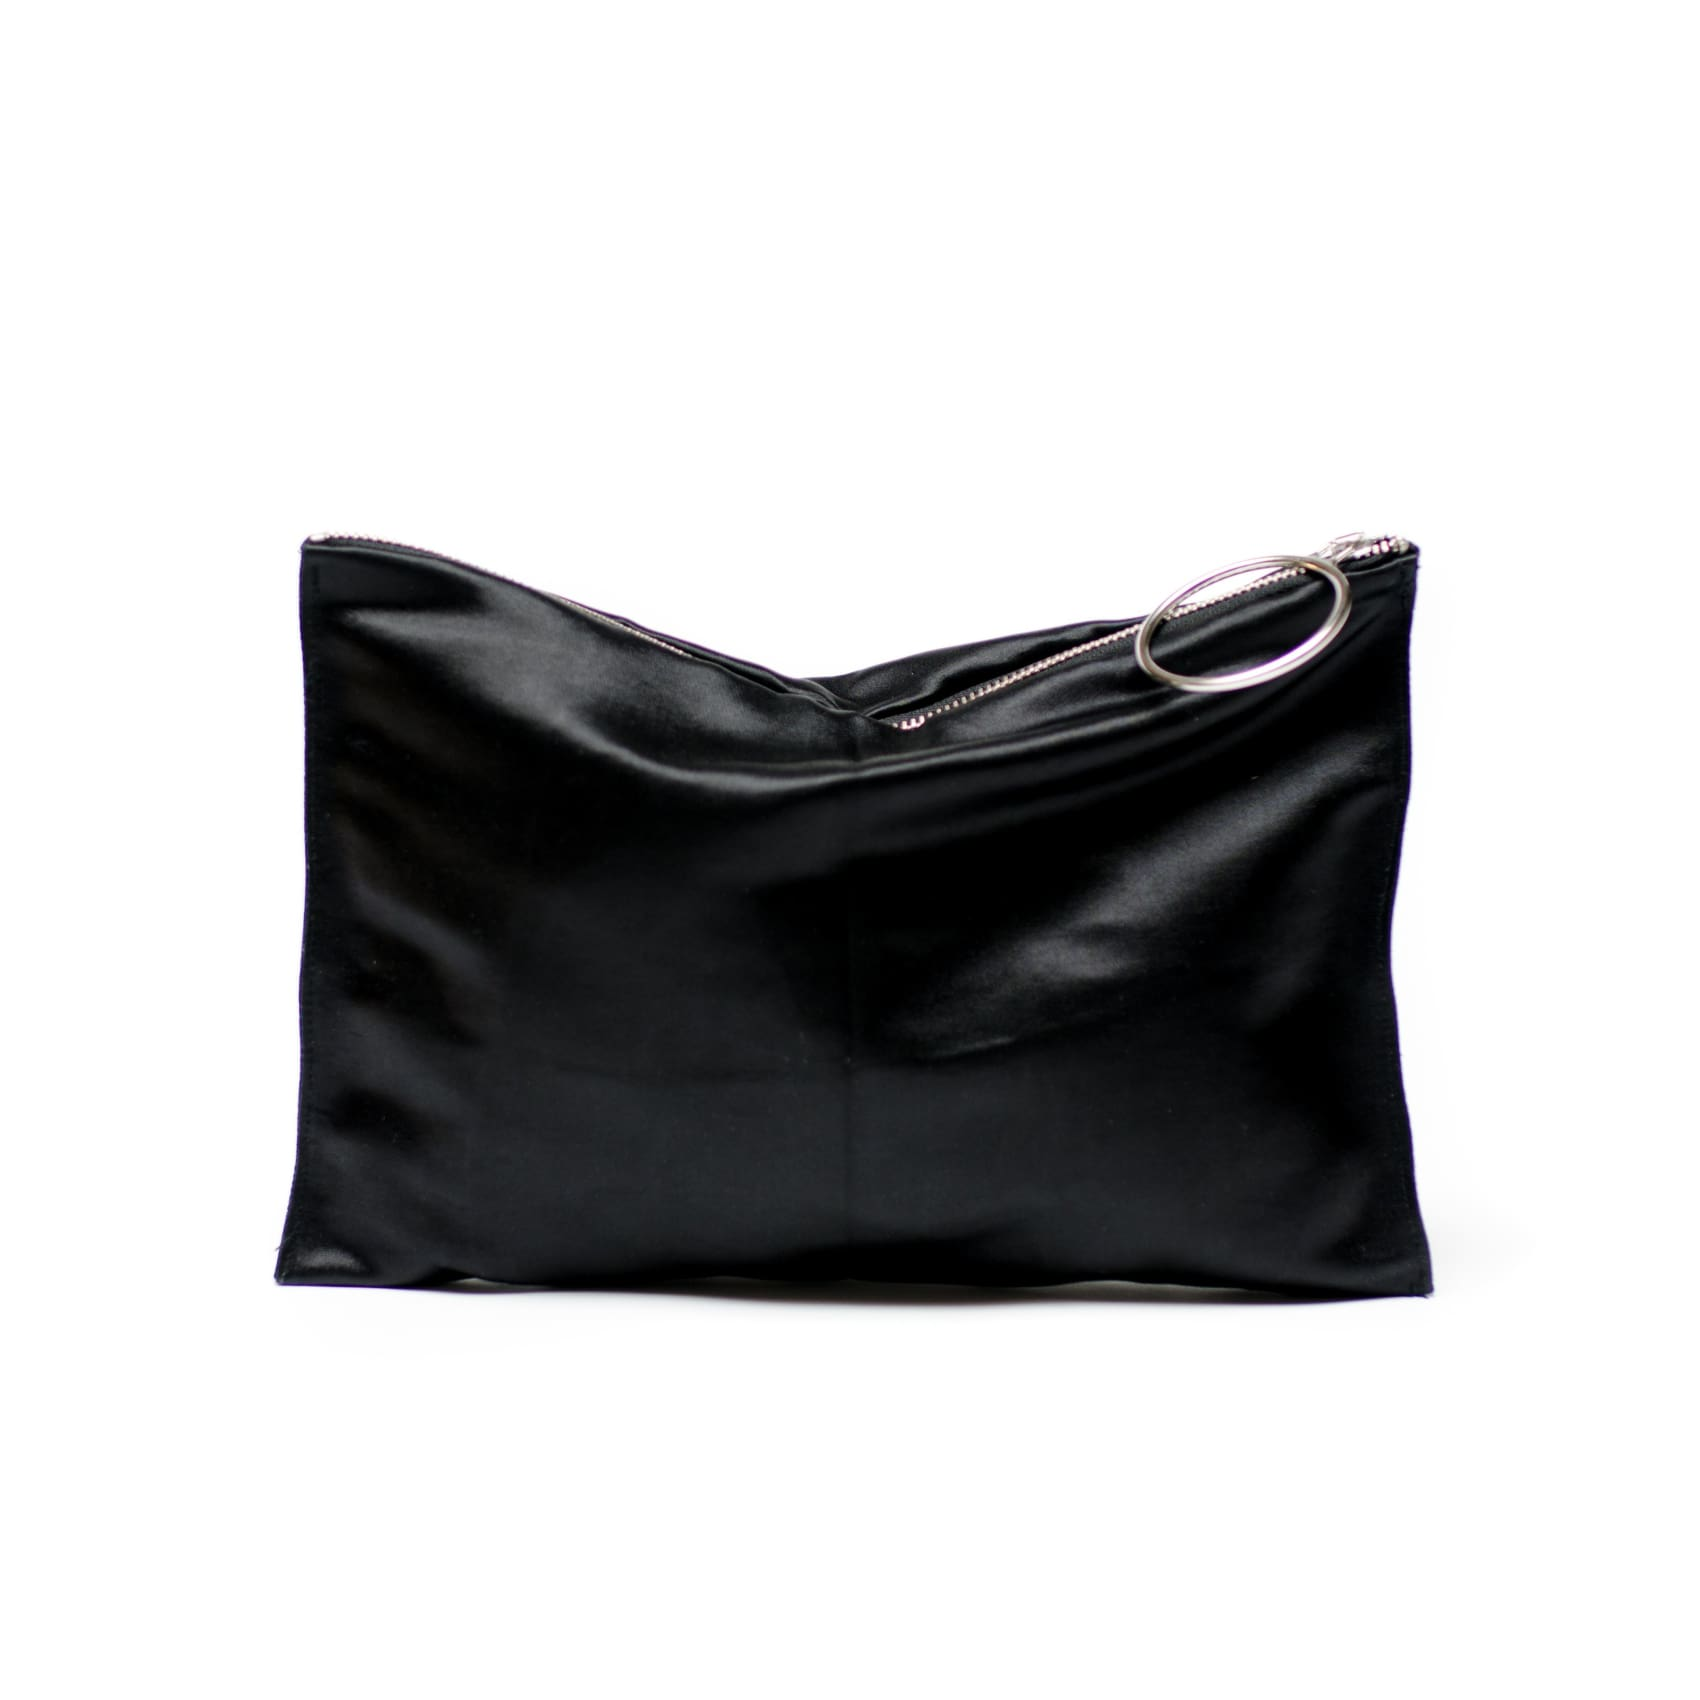 Silk Clutch - Black with Silver Hardware